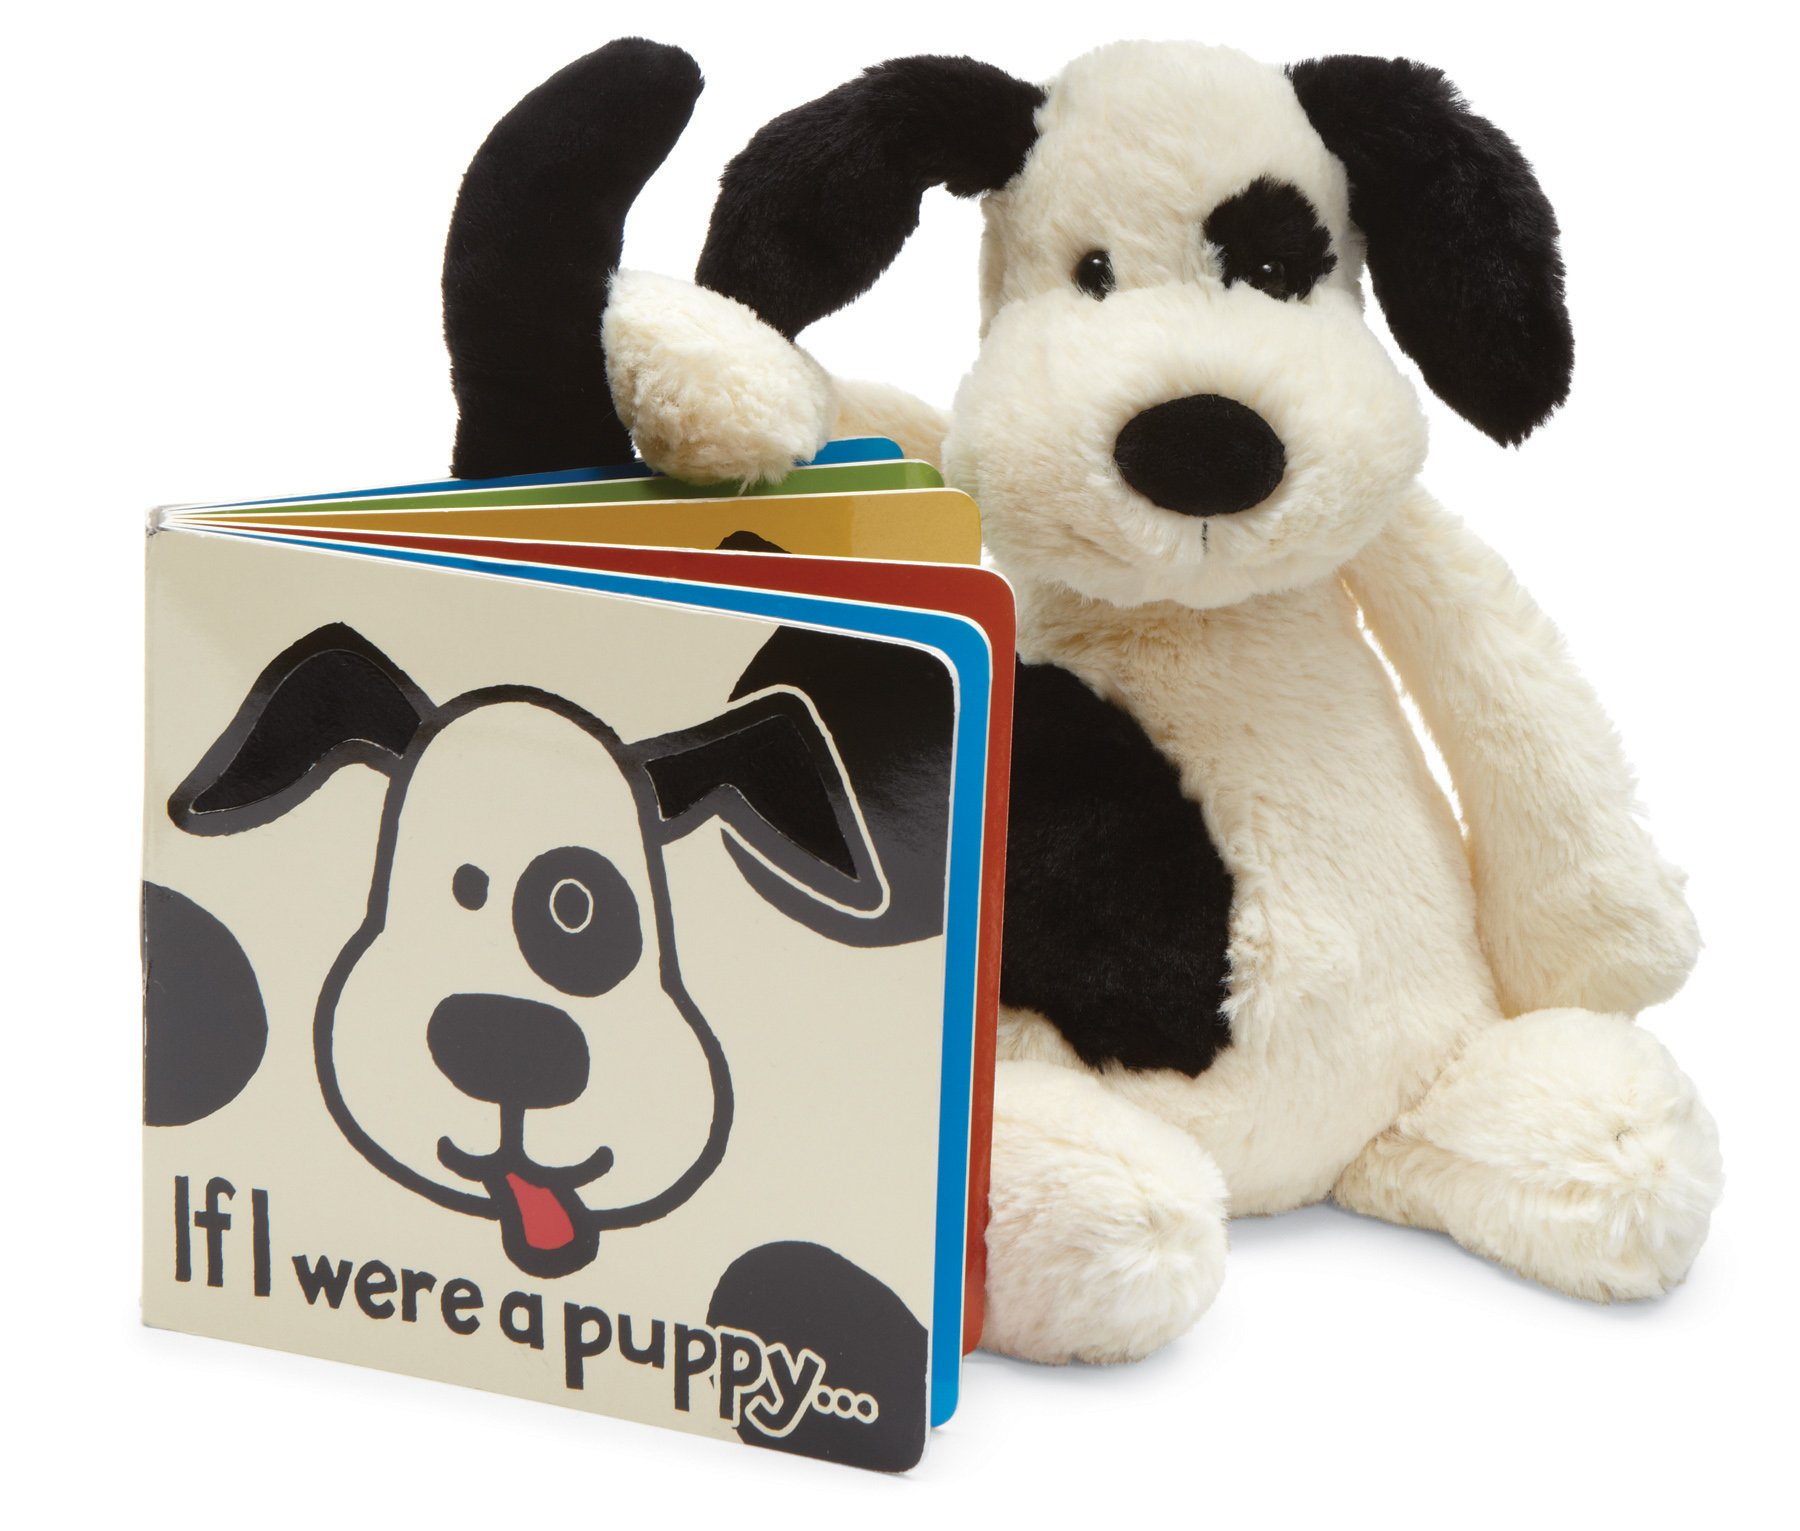 Jellycat If I Were a Puppy Board Book and Bashful Black and Cream Puppy, Medium - 12 inches